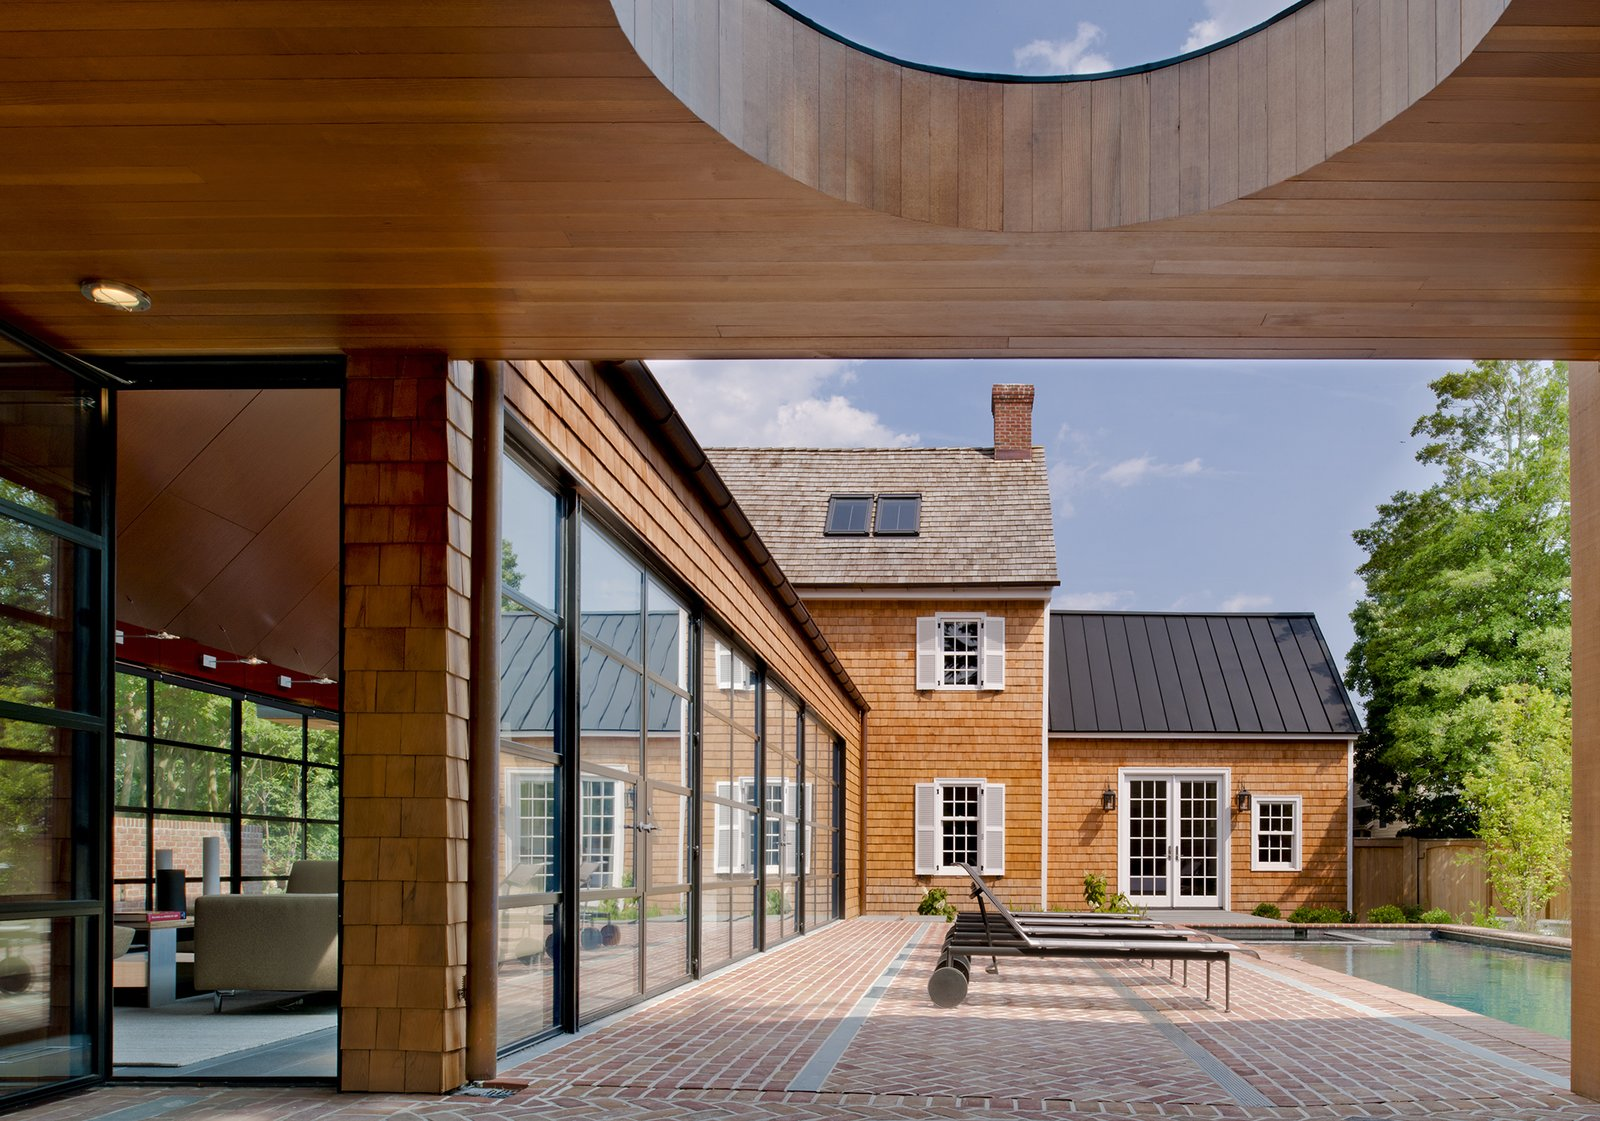 """""""The client wished to more that double the size of the house,"""" Gurney said. """"The goal was to provide the additional space as a series of smaller pavilions to allow the original historical house to be the most important part of the composition."""" Steel swing doors by Hope's Windows Inc. lead outside, and a custom standing seam metal roof slopes above the far end of the pool.  Brilliant Examples of Indoor-Outdoor Homes by Zachary Edelson from A Traditional Facade Hides A Light-Filled Modern Delaware Renovation"""